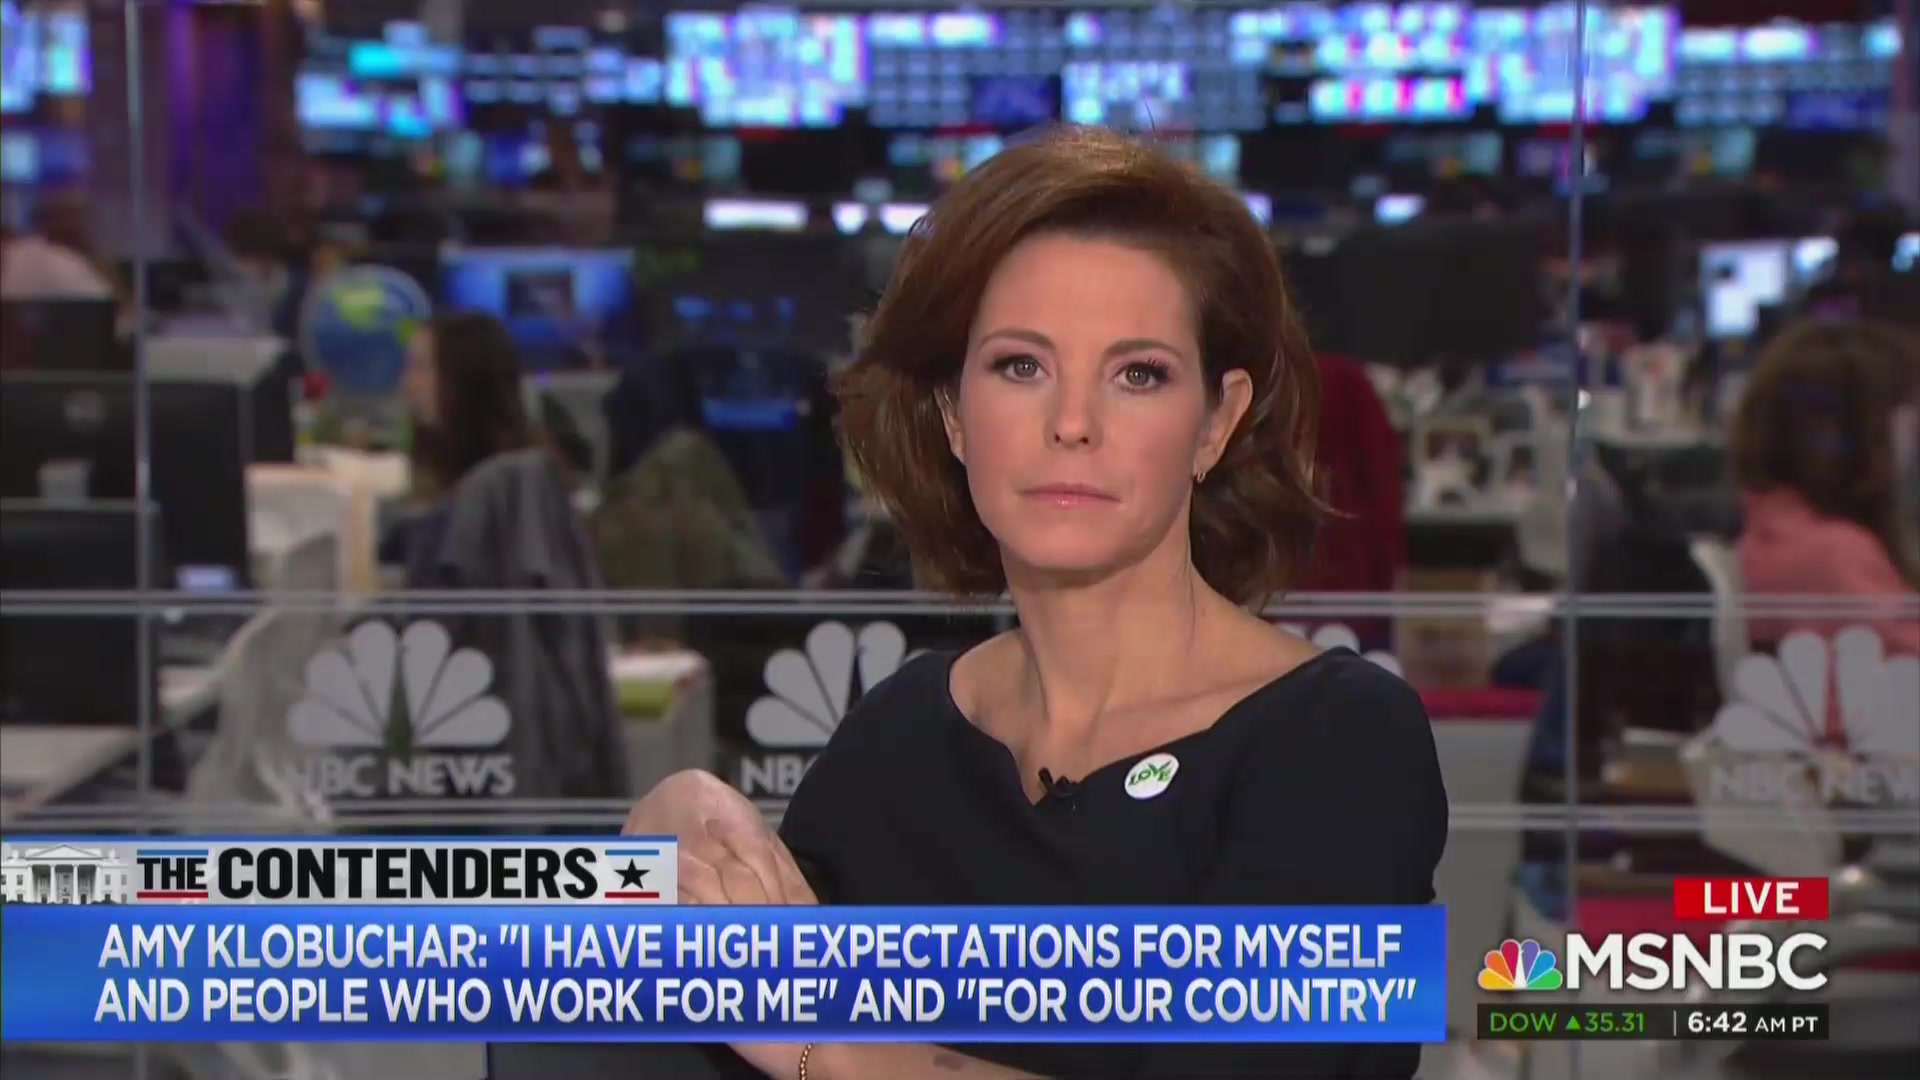 MSNBC's Stephanie Ruhle: People Are 'Basically Saying' Amy Klobuchar 'Was a Bossy Bitch'